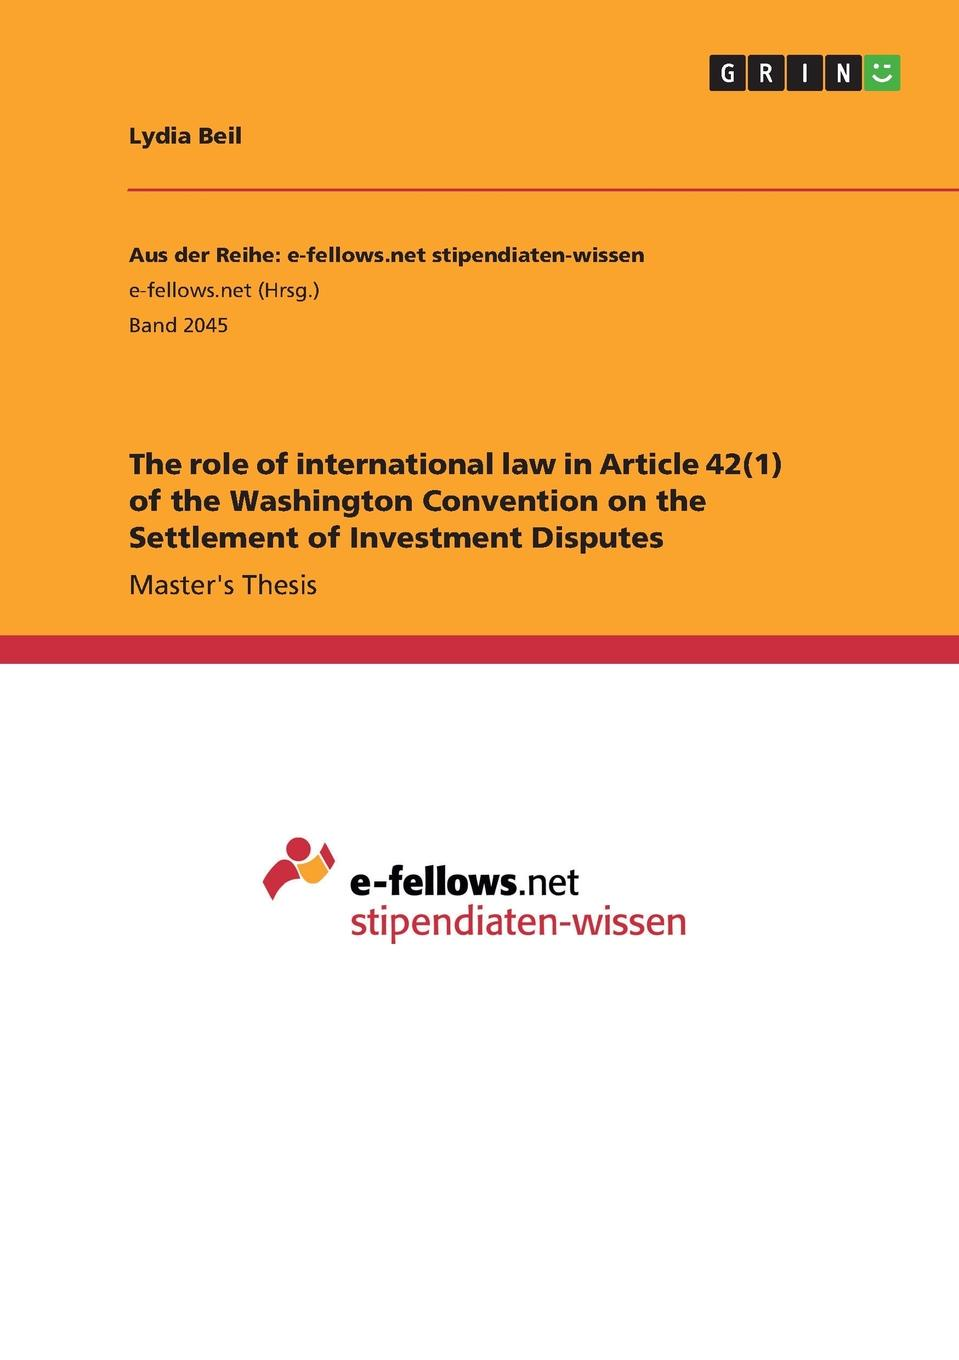 Lydia Beil The role of international law in Article 42(1) of the Washington Convention on the Settlement of Investment Disputes local remedies in international law